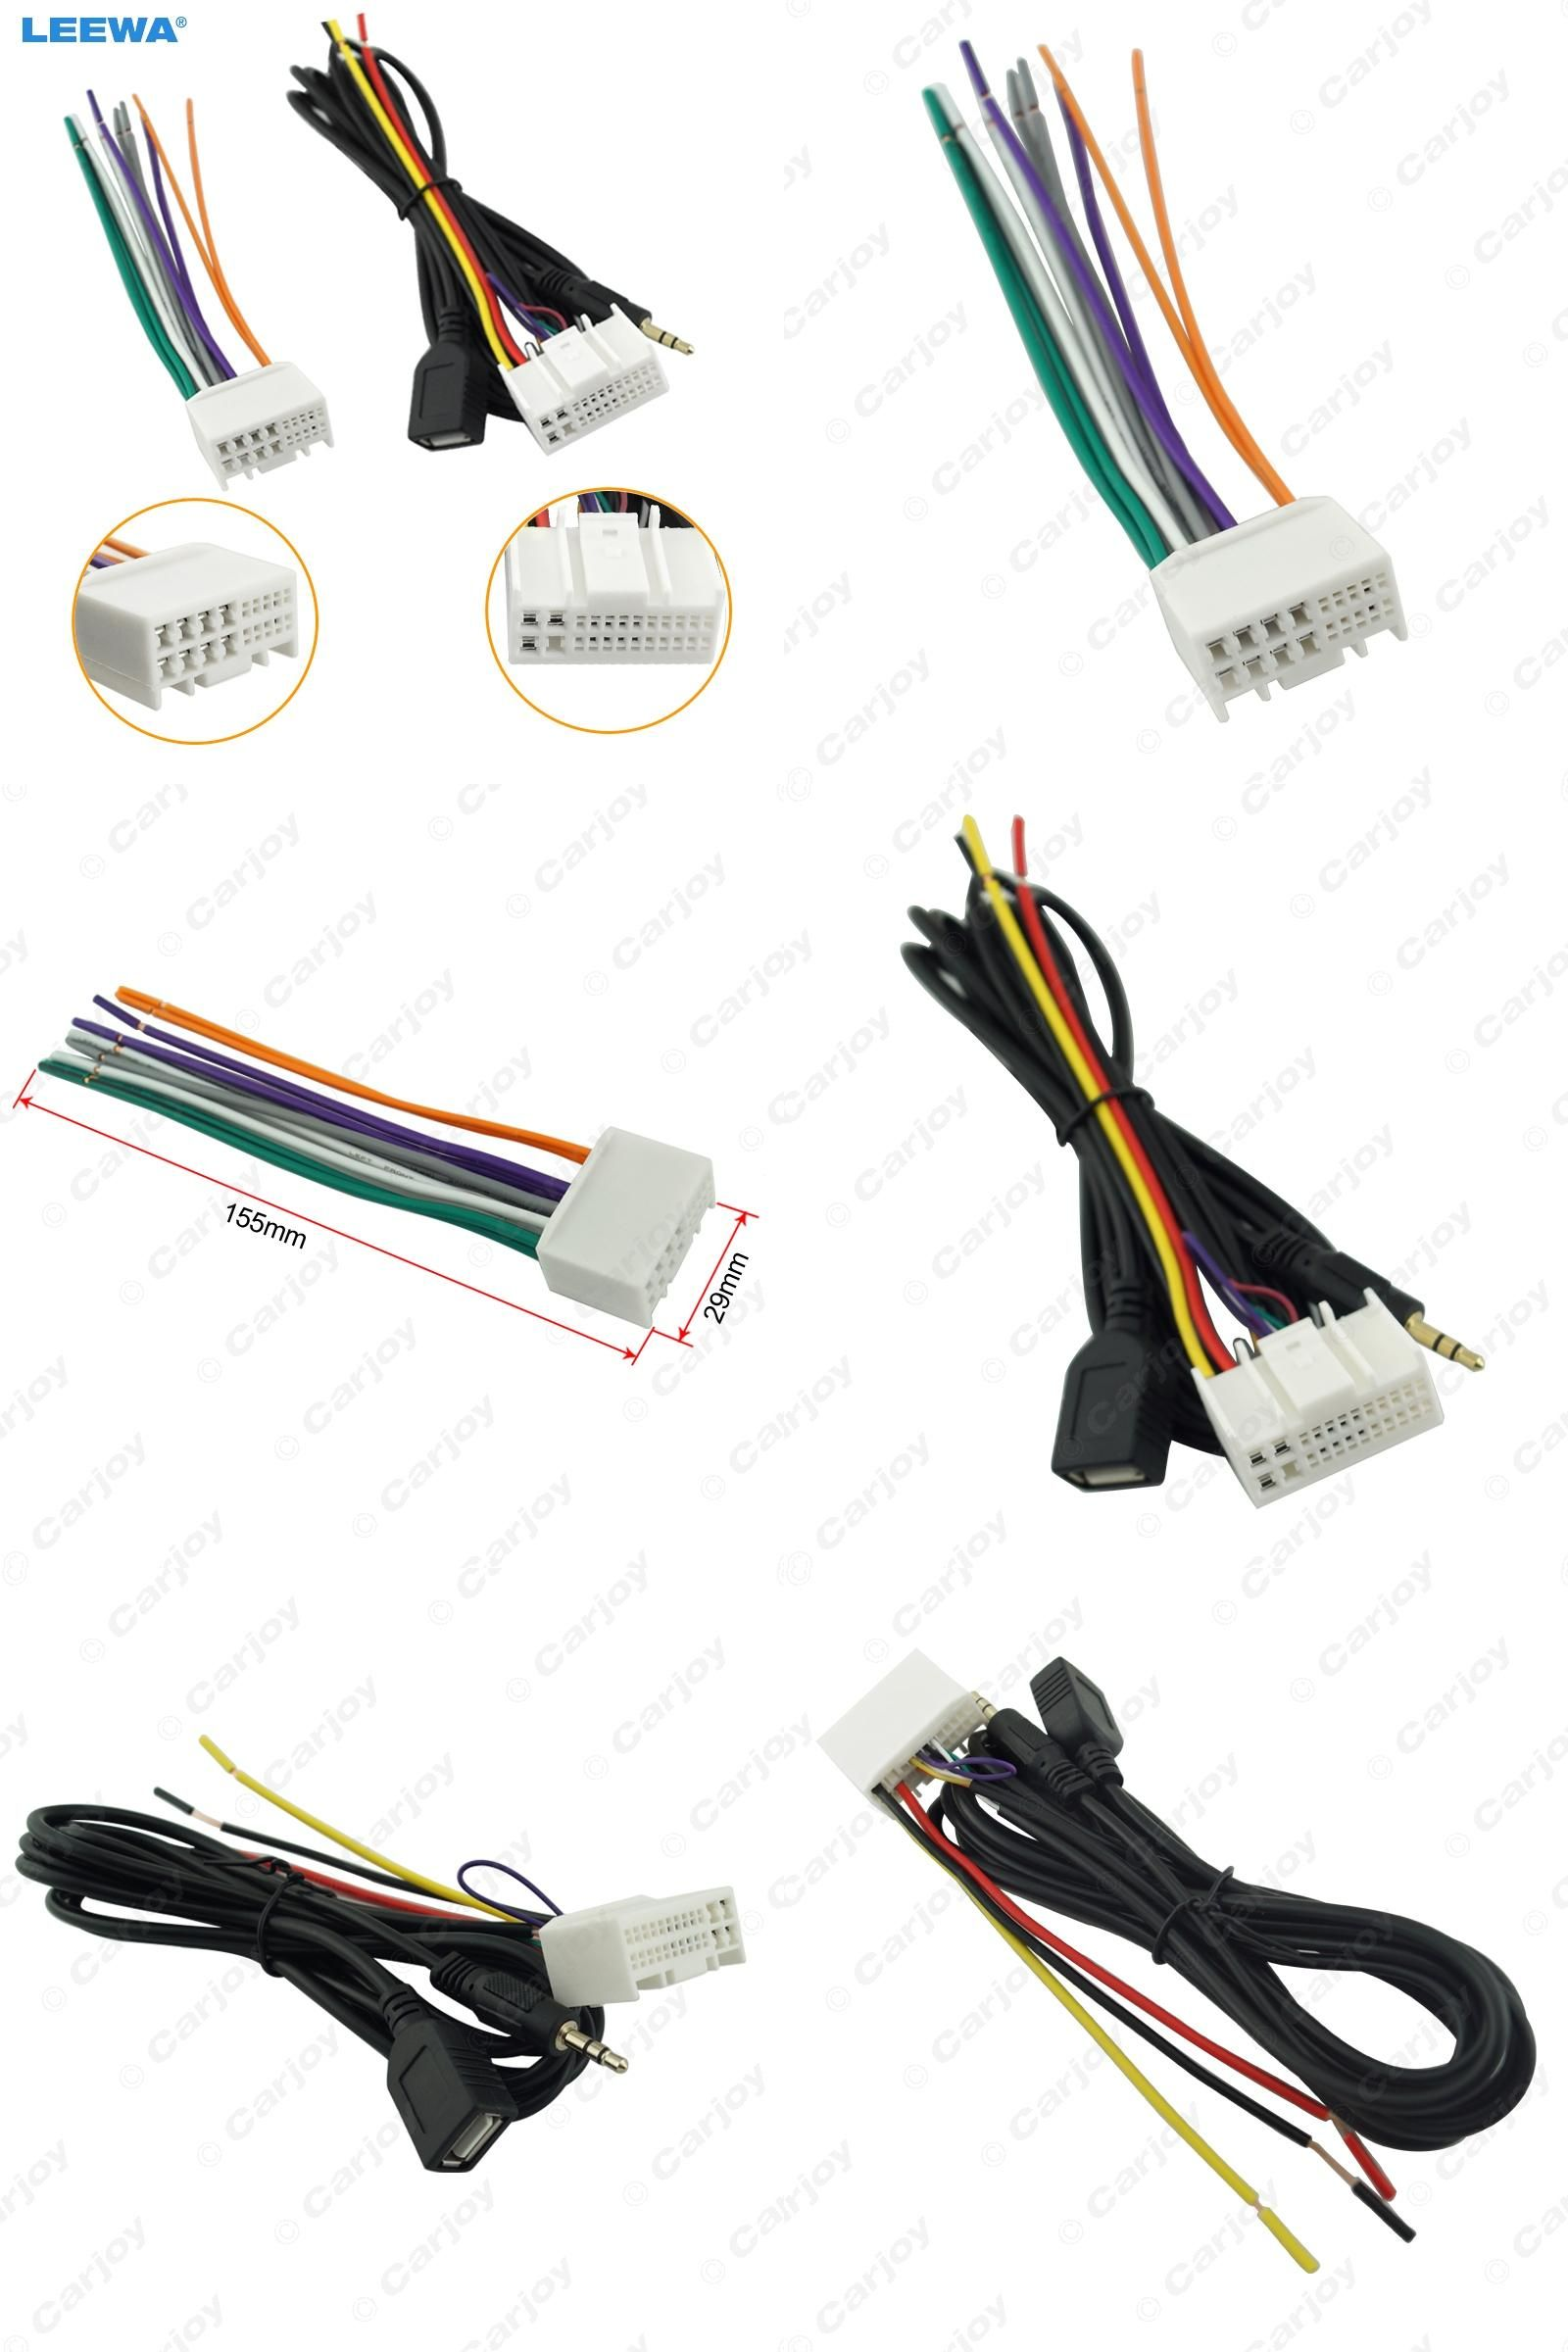 65bba15fb3a8d9bc4f1b698bf8827601 visit to buy] car audio cd stereo wiring harness adapter with usb Car Radio Wiring Harness Diagram at crackthecode.co